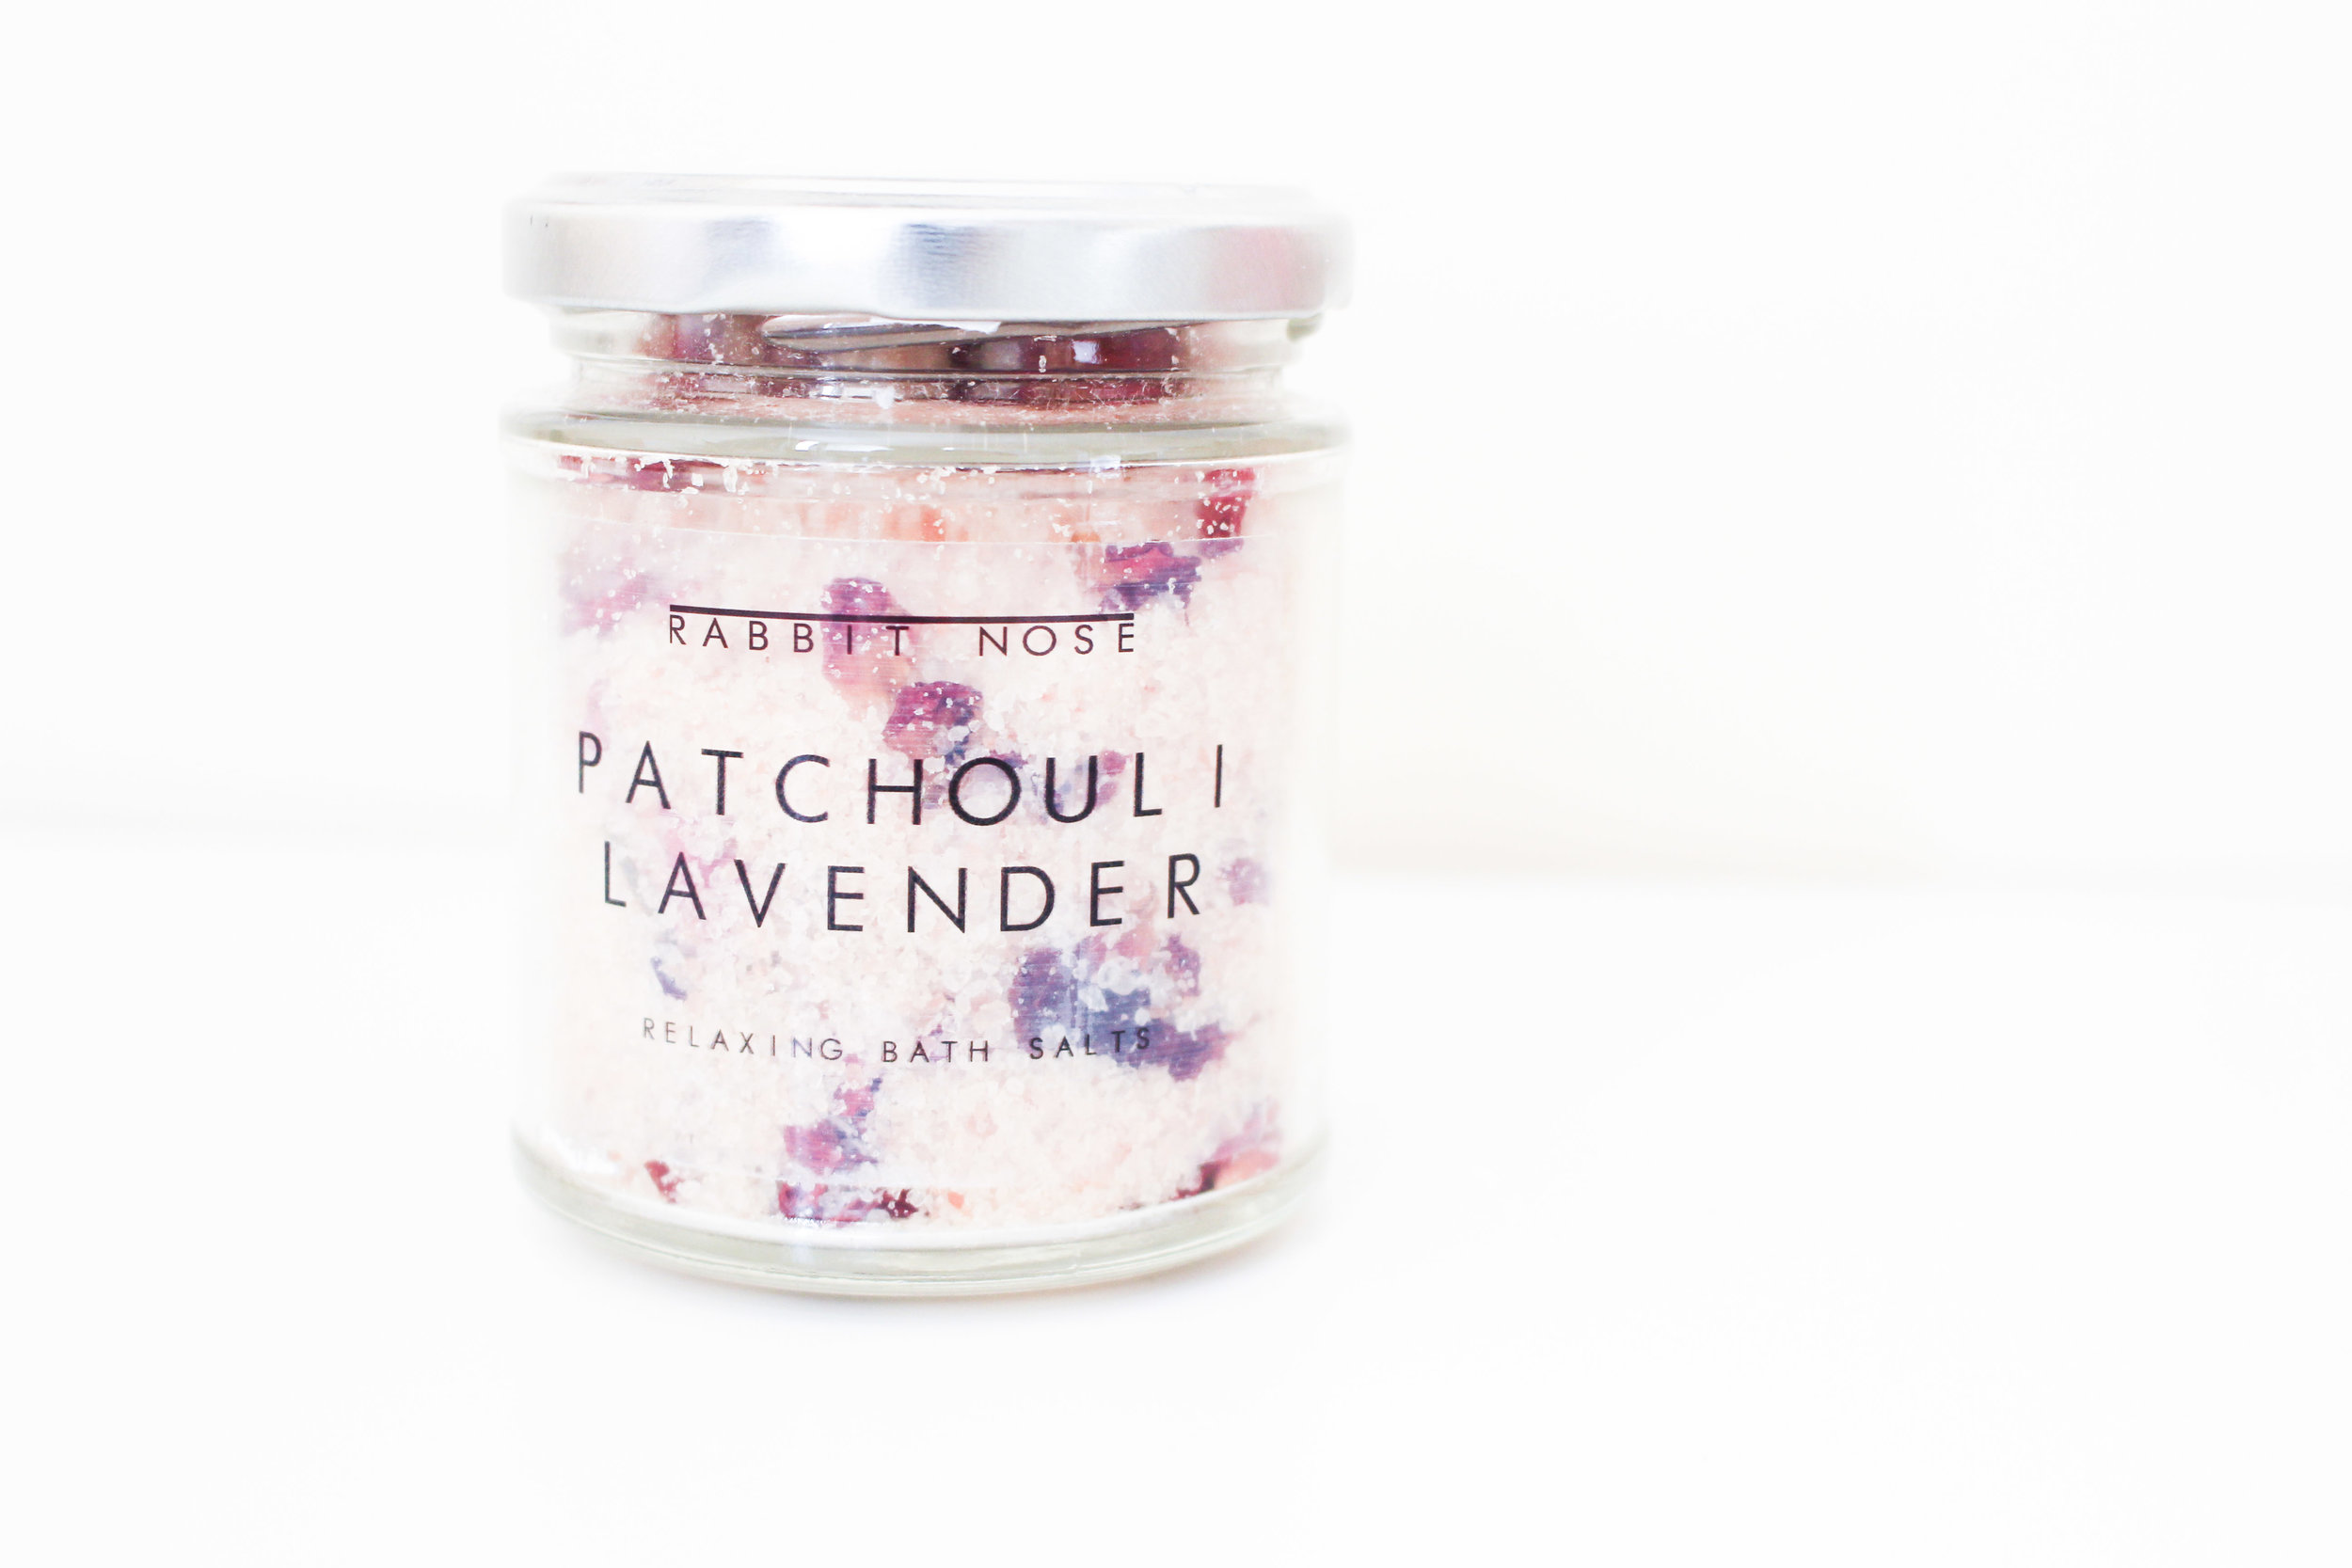 Rabbit Nose Apothecary Patchouli and Lavender Relaxing Bath Salts